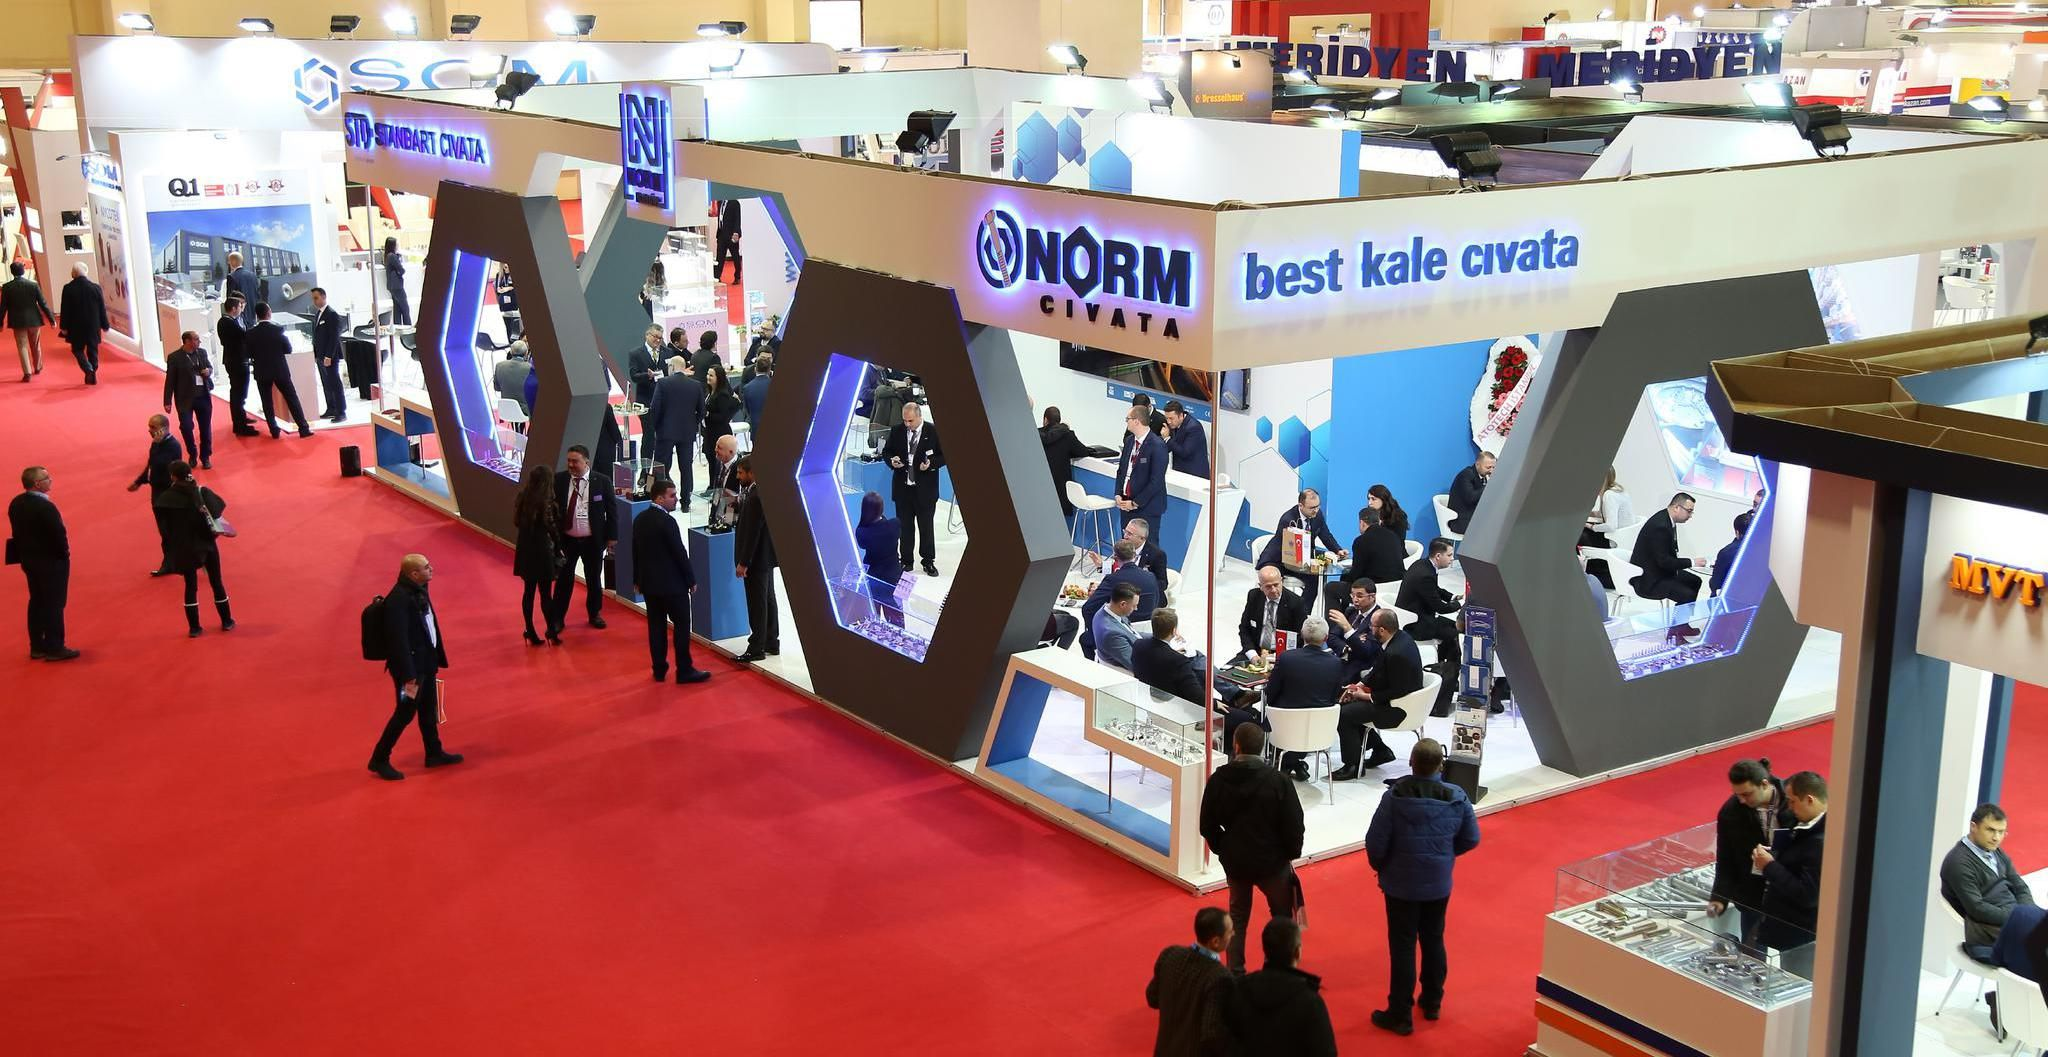 Fastener Fair Turkey is the showcase event for fastener and fixing technology. This trade event brings together producers, wholesalers & reseller distributors and end-users of fastener systems, as well as companies specialising in fastener manufacturing equipment and materials.